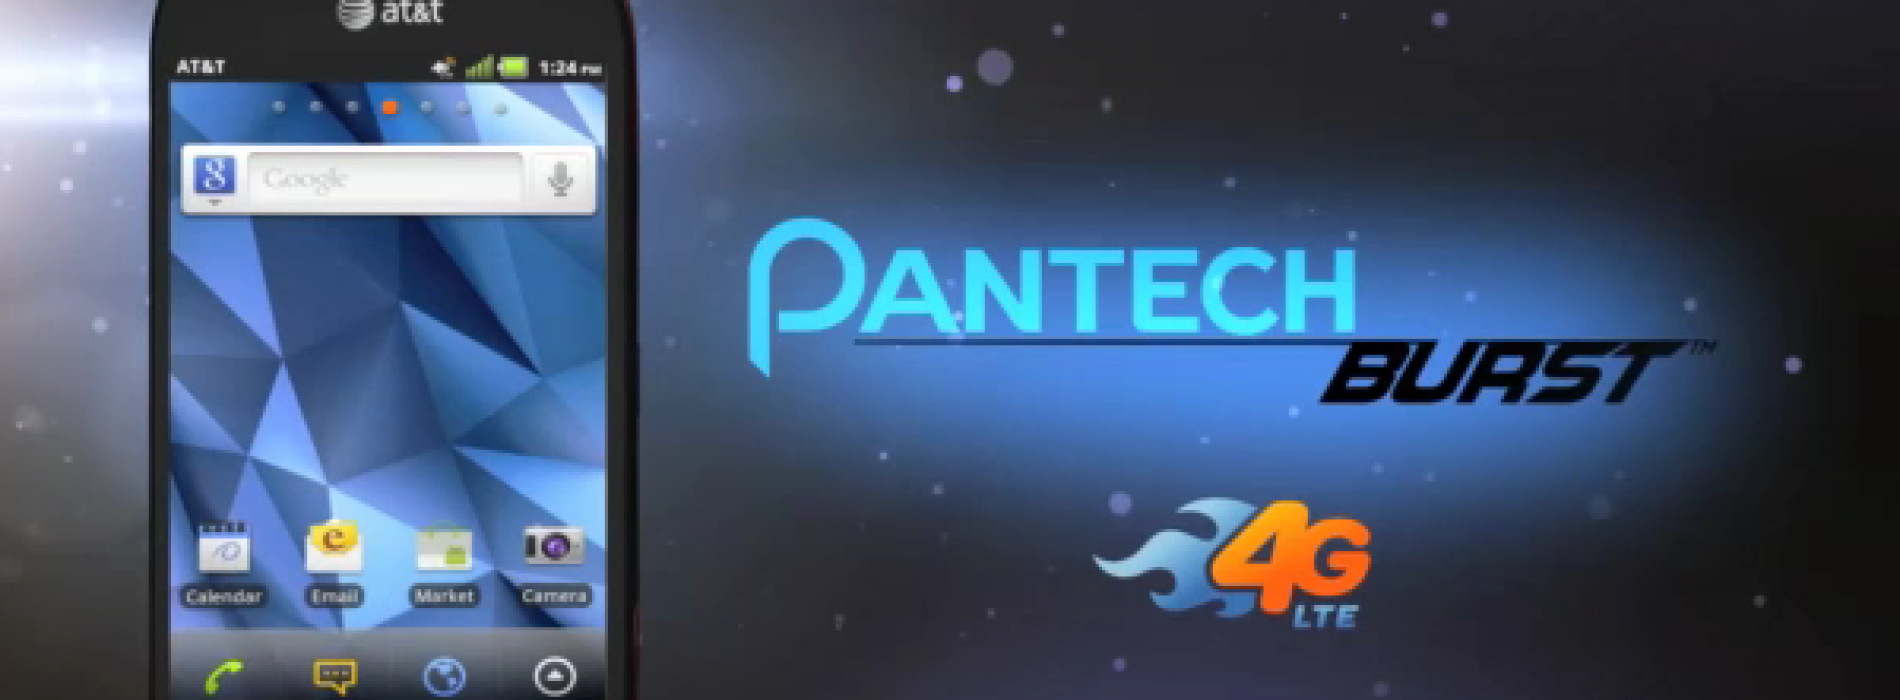 Pantech Burst review